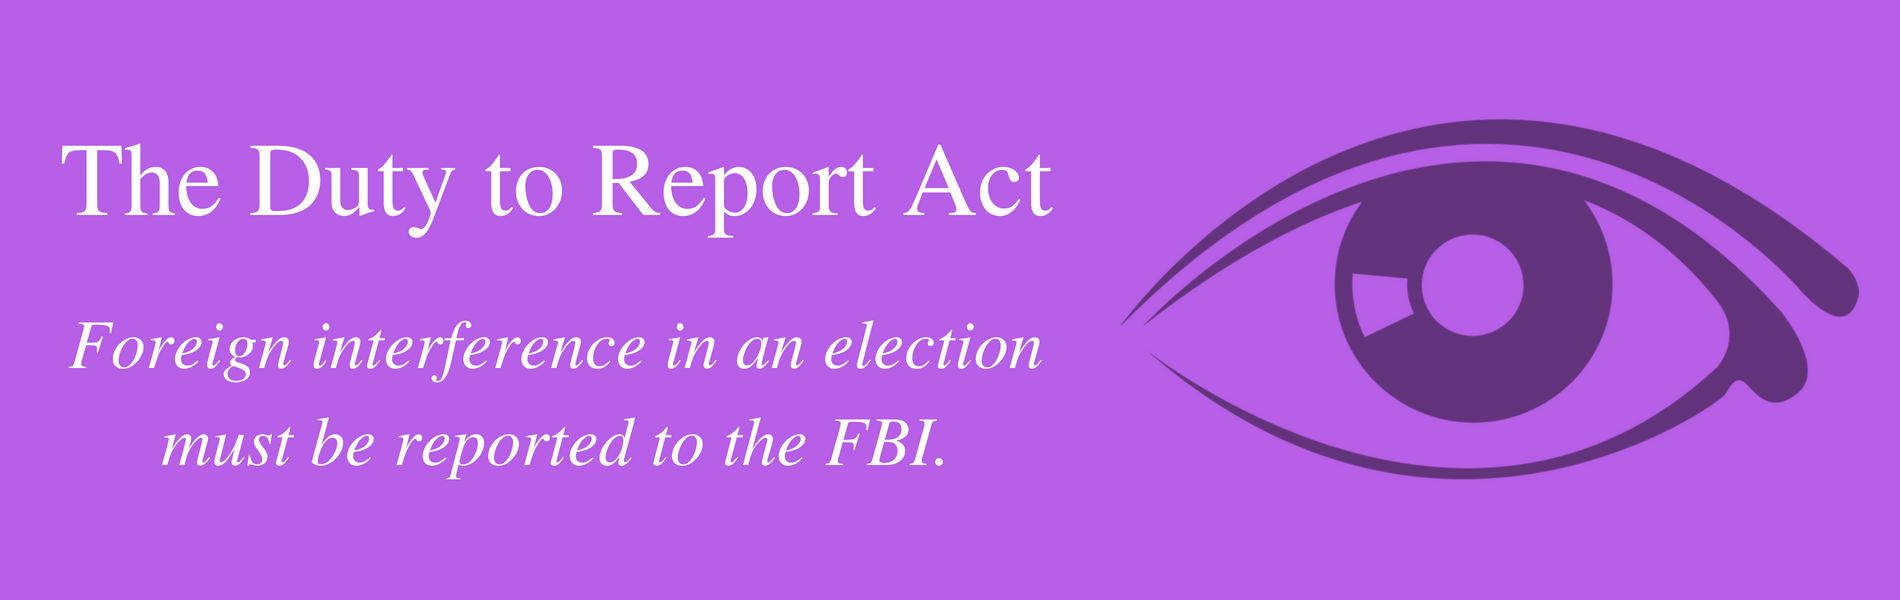 Swalwell Introduces Duty to Report Act to Protect Elections from Foreign Interference